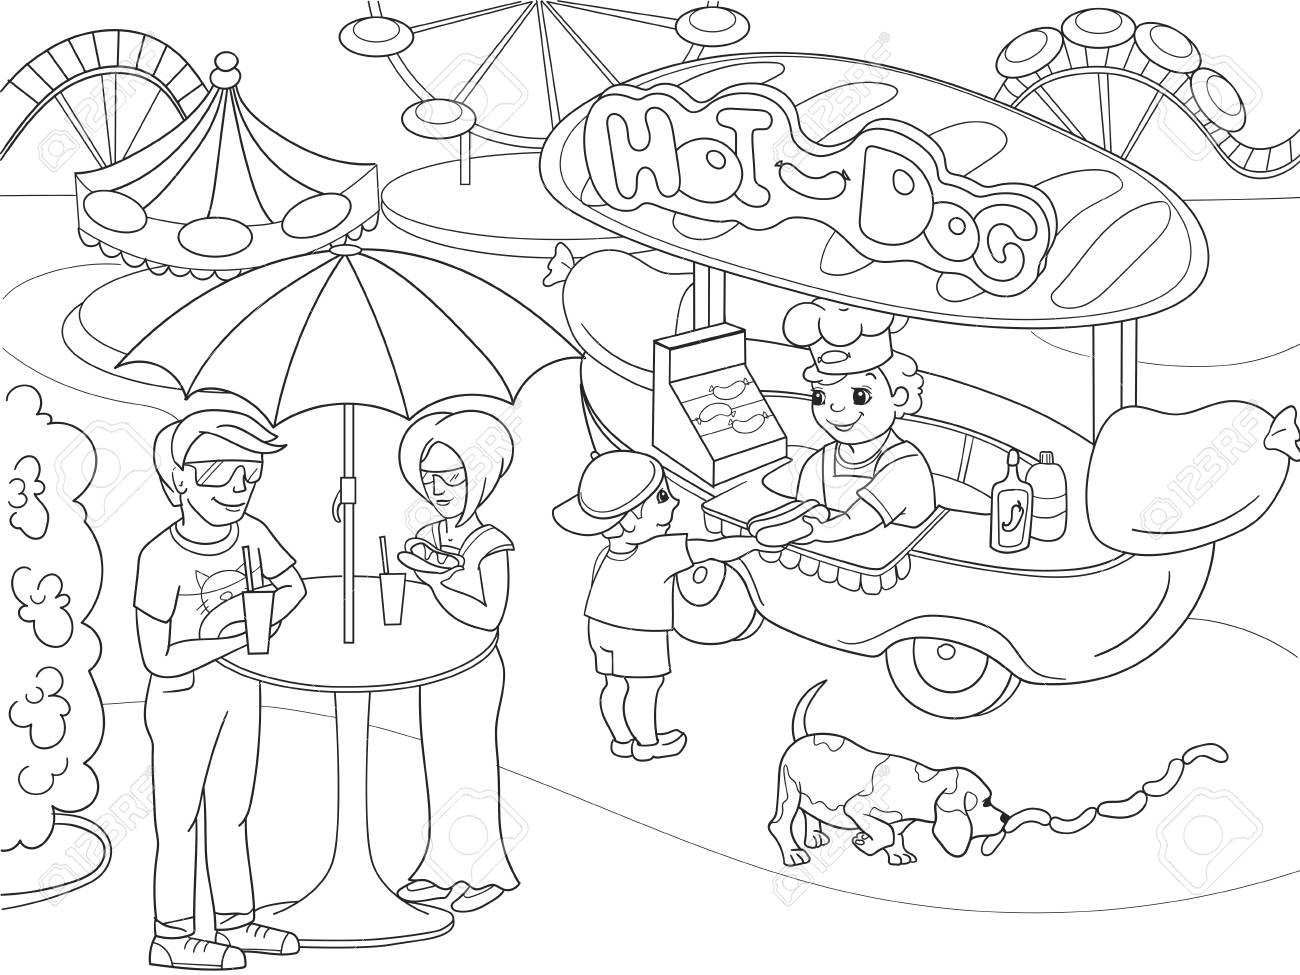 Hot Dog Coloring Pages - GetColoringPages.com | 975x1300